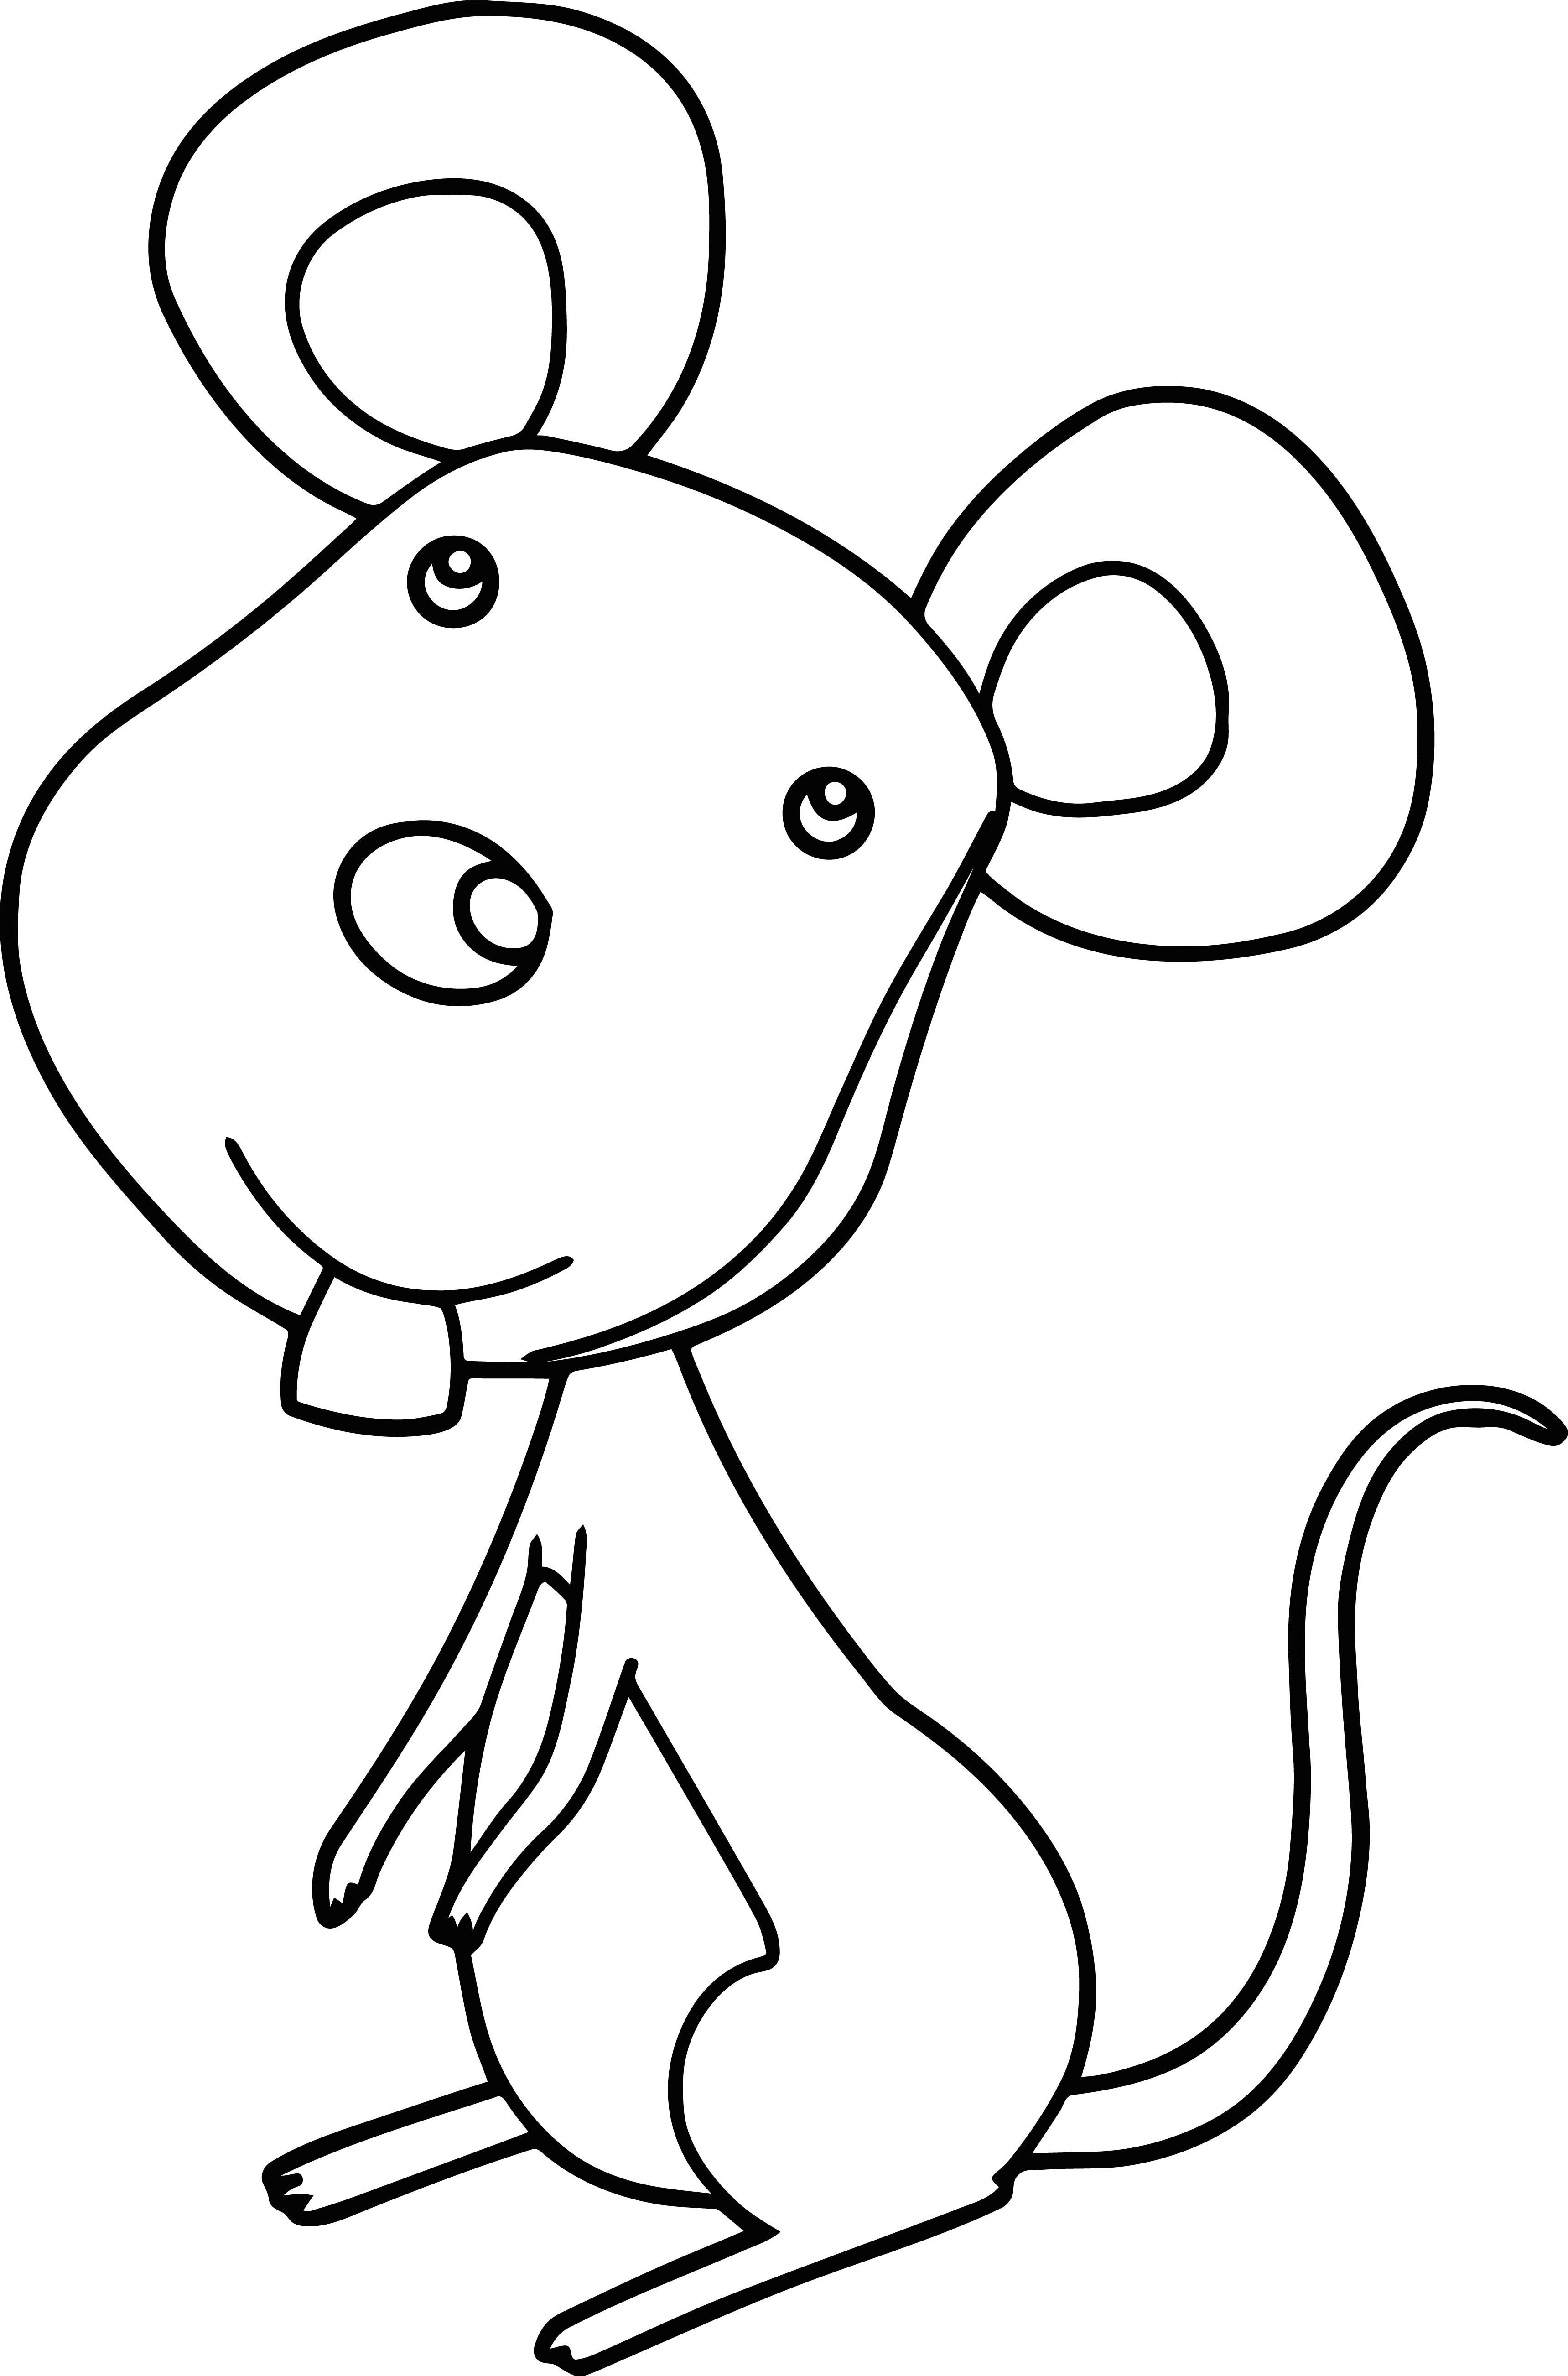 Mouse Jpeg Coloring Page 117